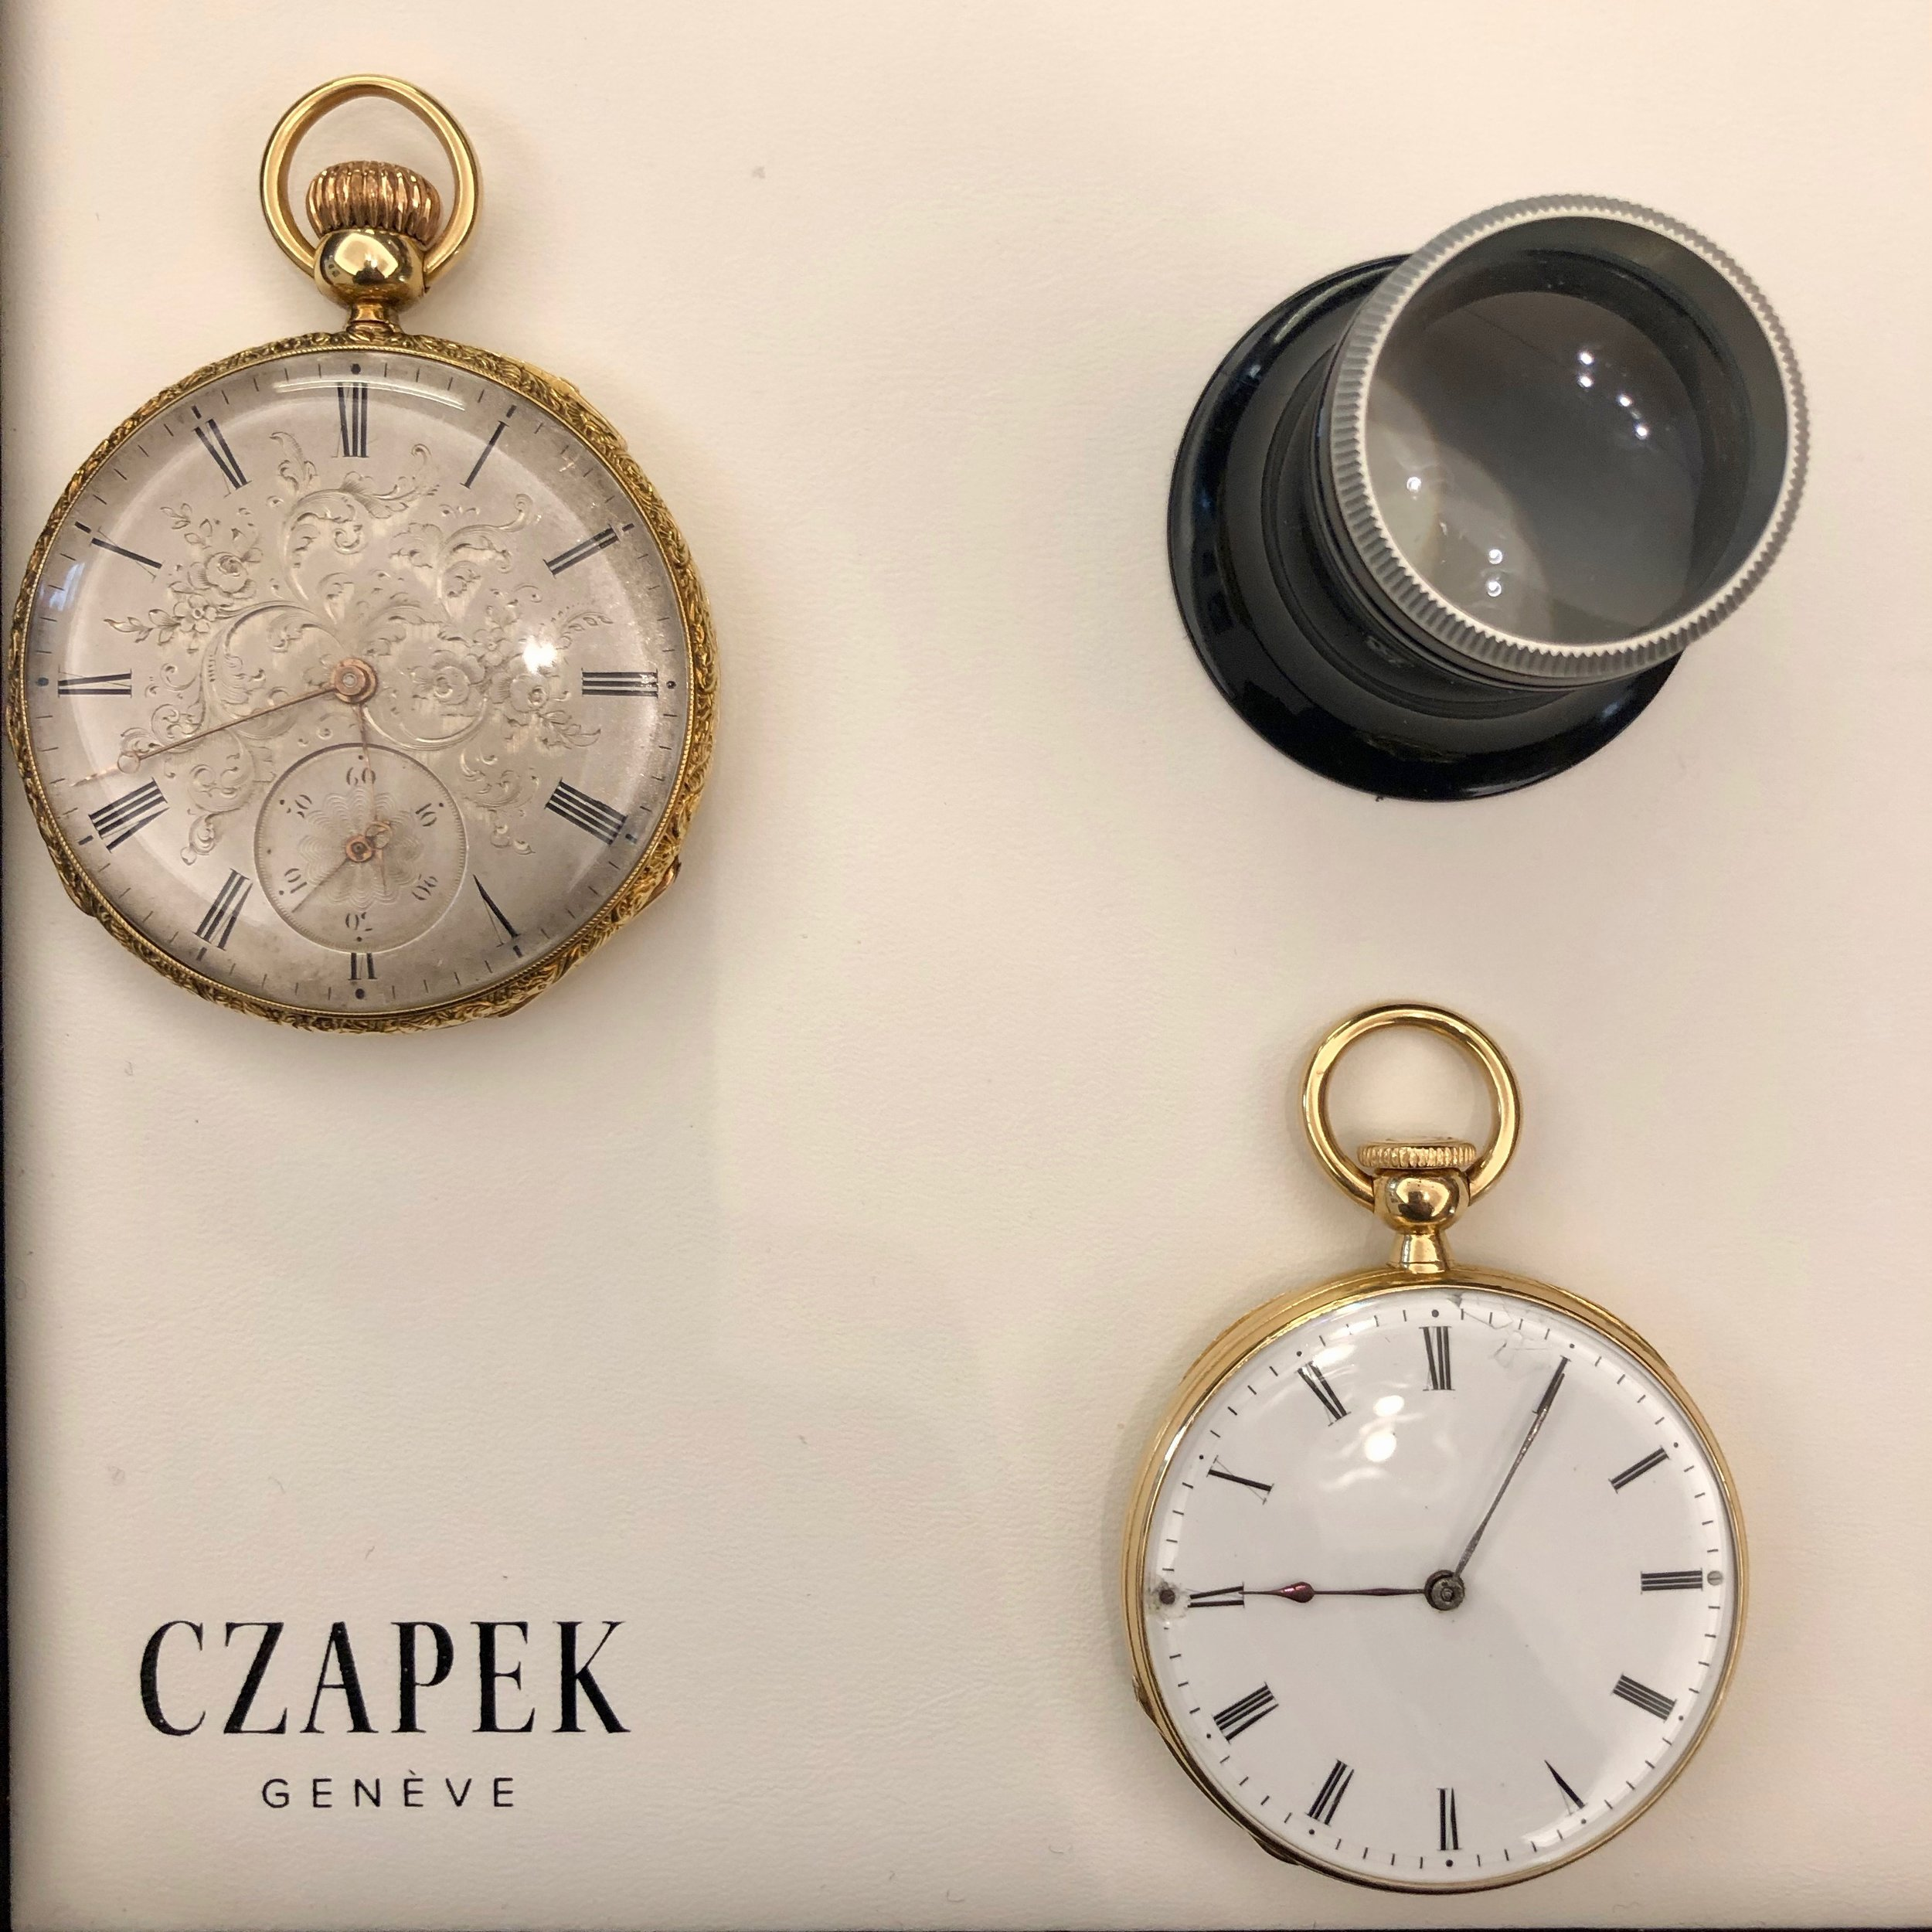 Original Czapek pocket watches from the 1850s, now part of the company's private collection.